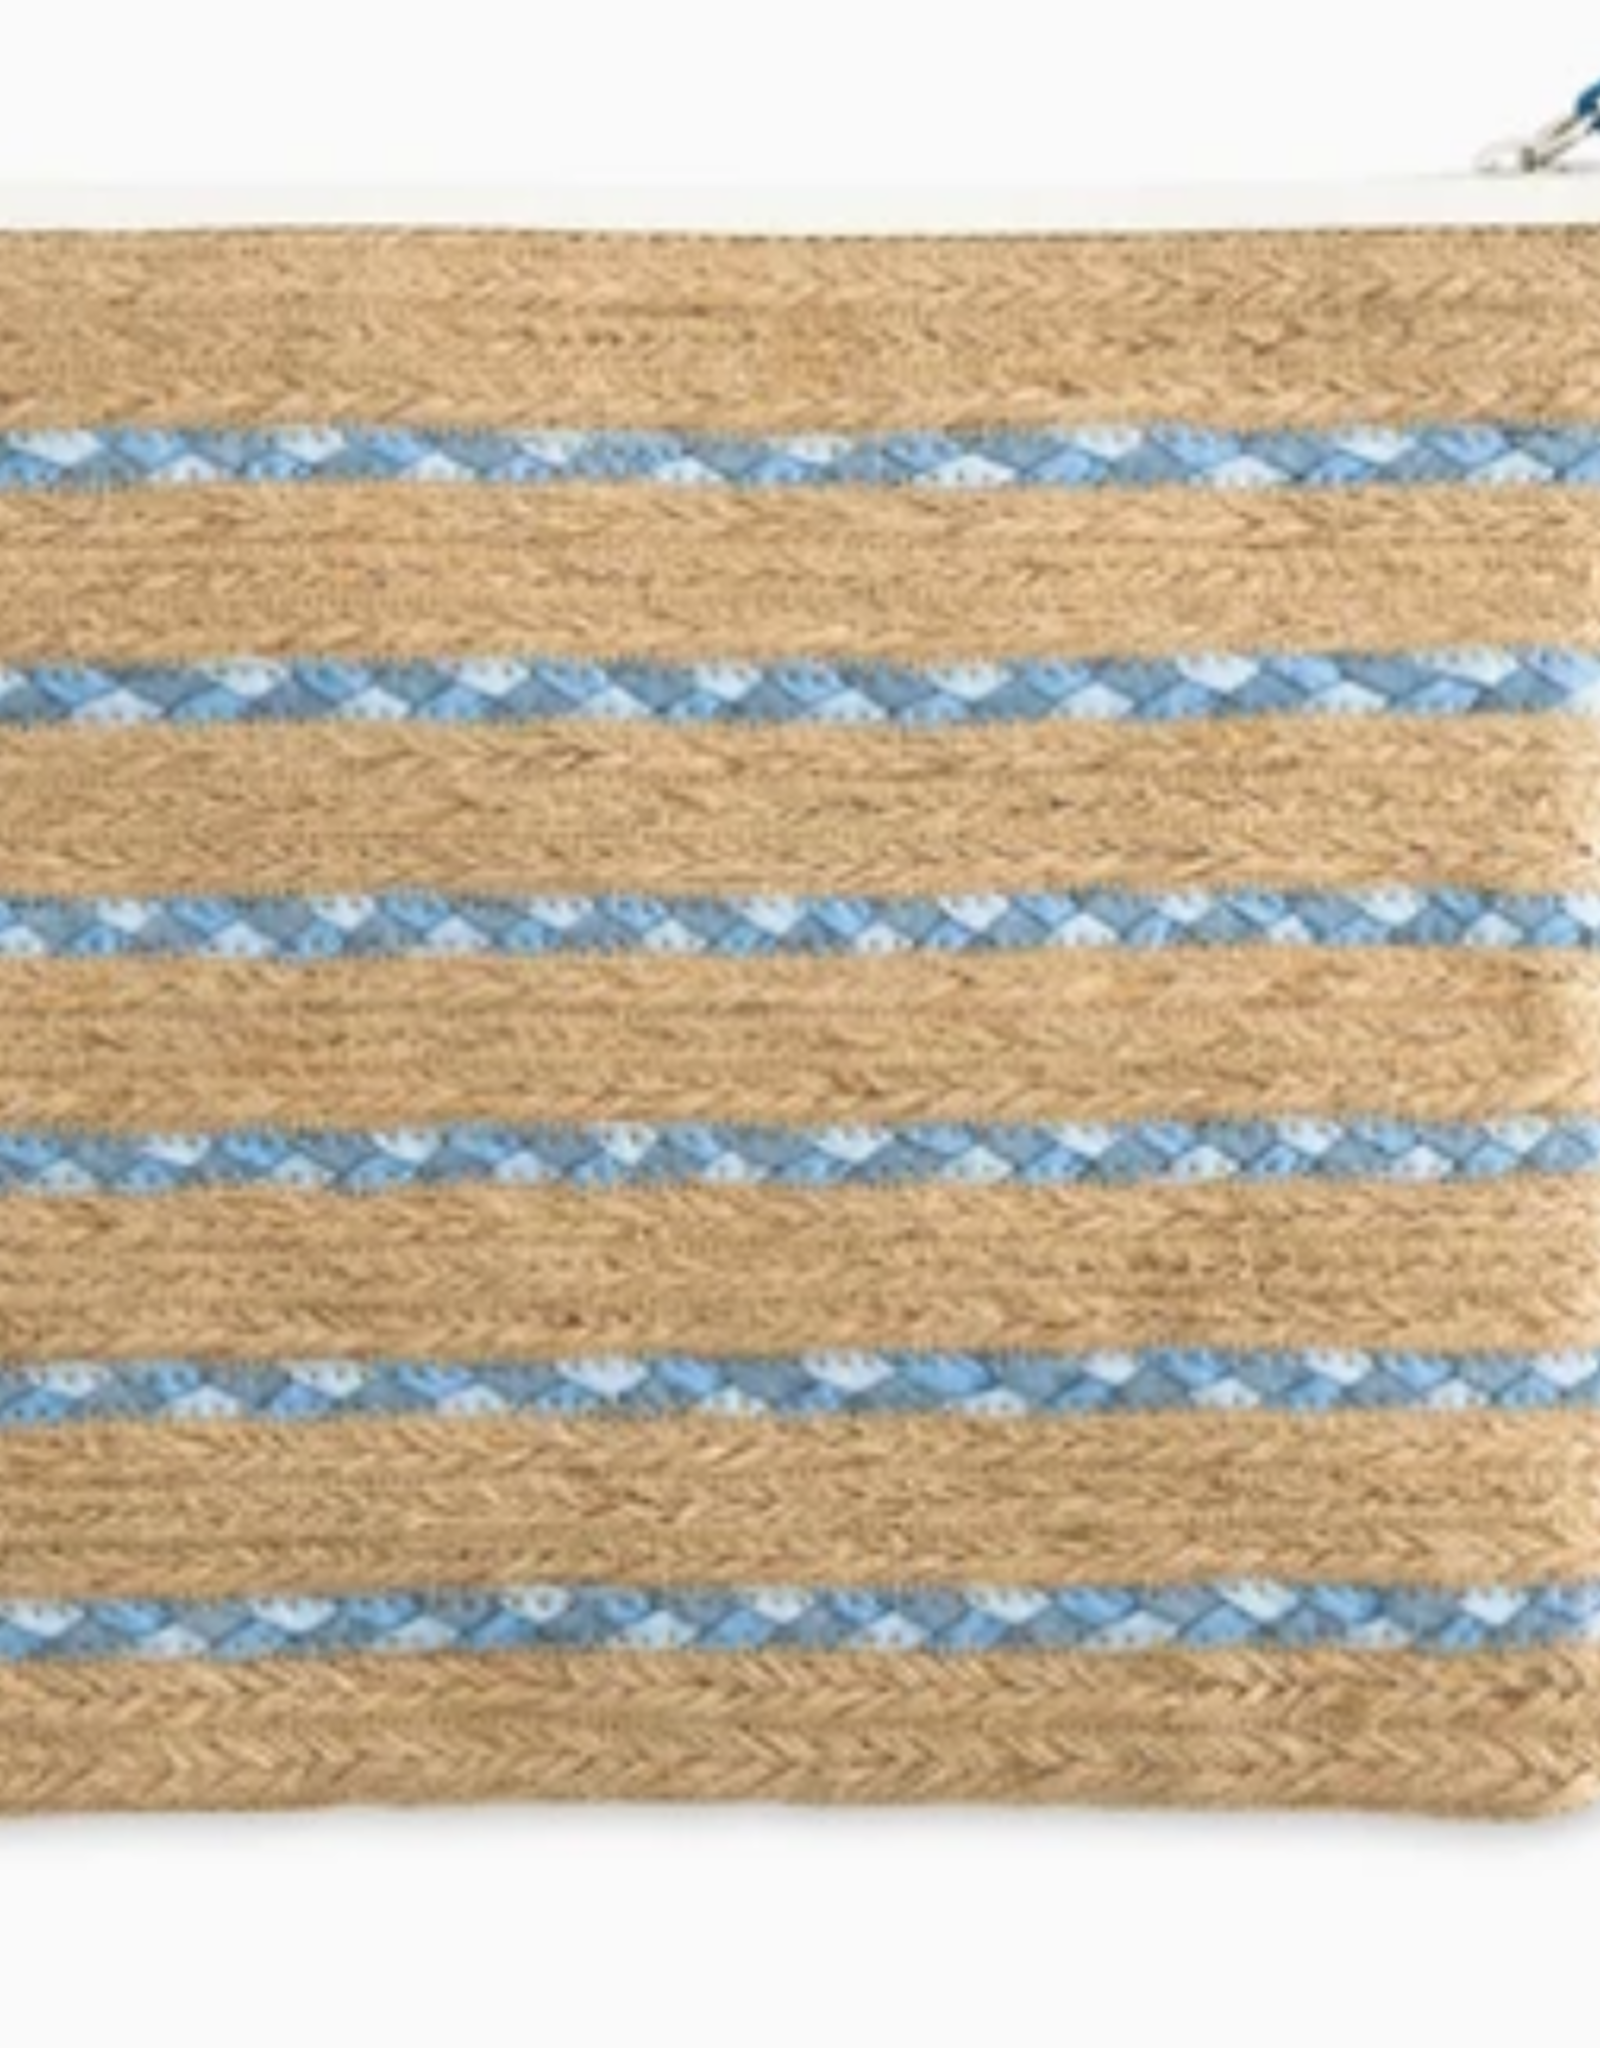 SOUTHERN TIDE BRAIDED CLUTCH